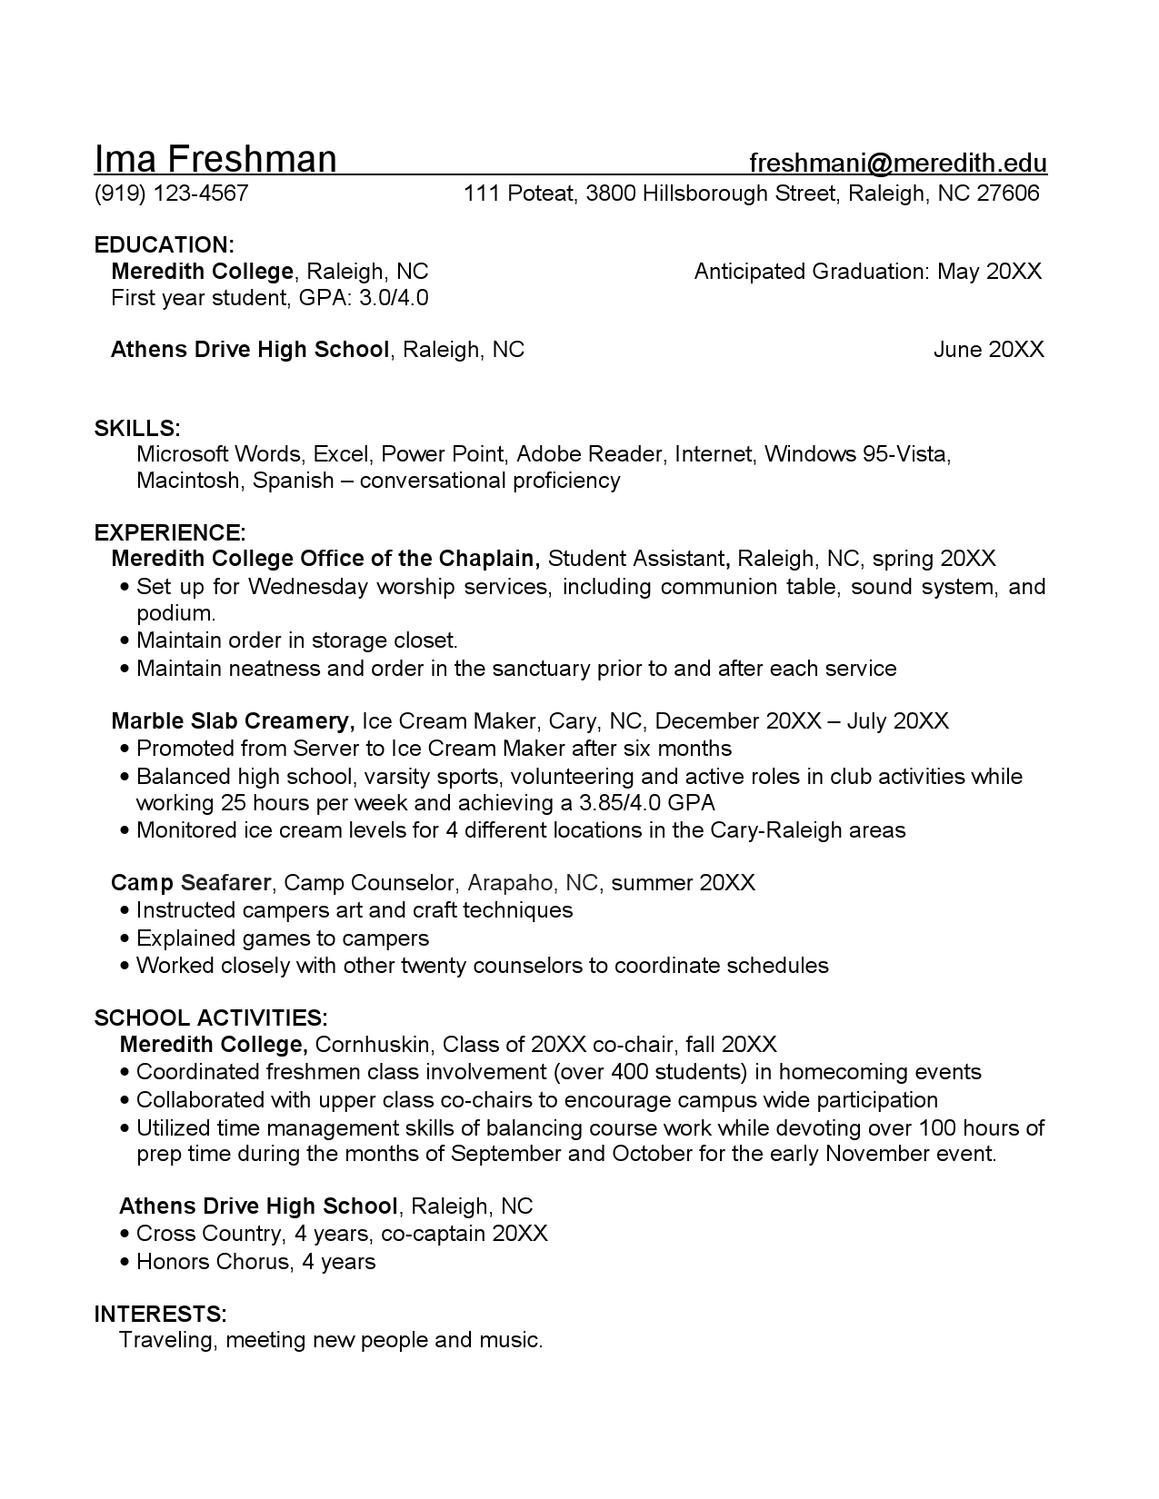 freshman resume sample by meredith college academic career planning issuu data scientist Resume Freshman College Resume Sample